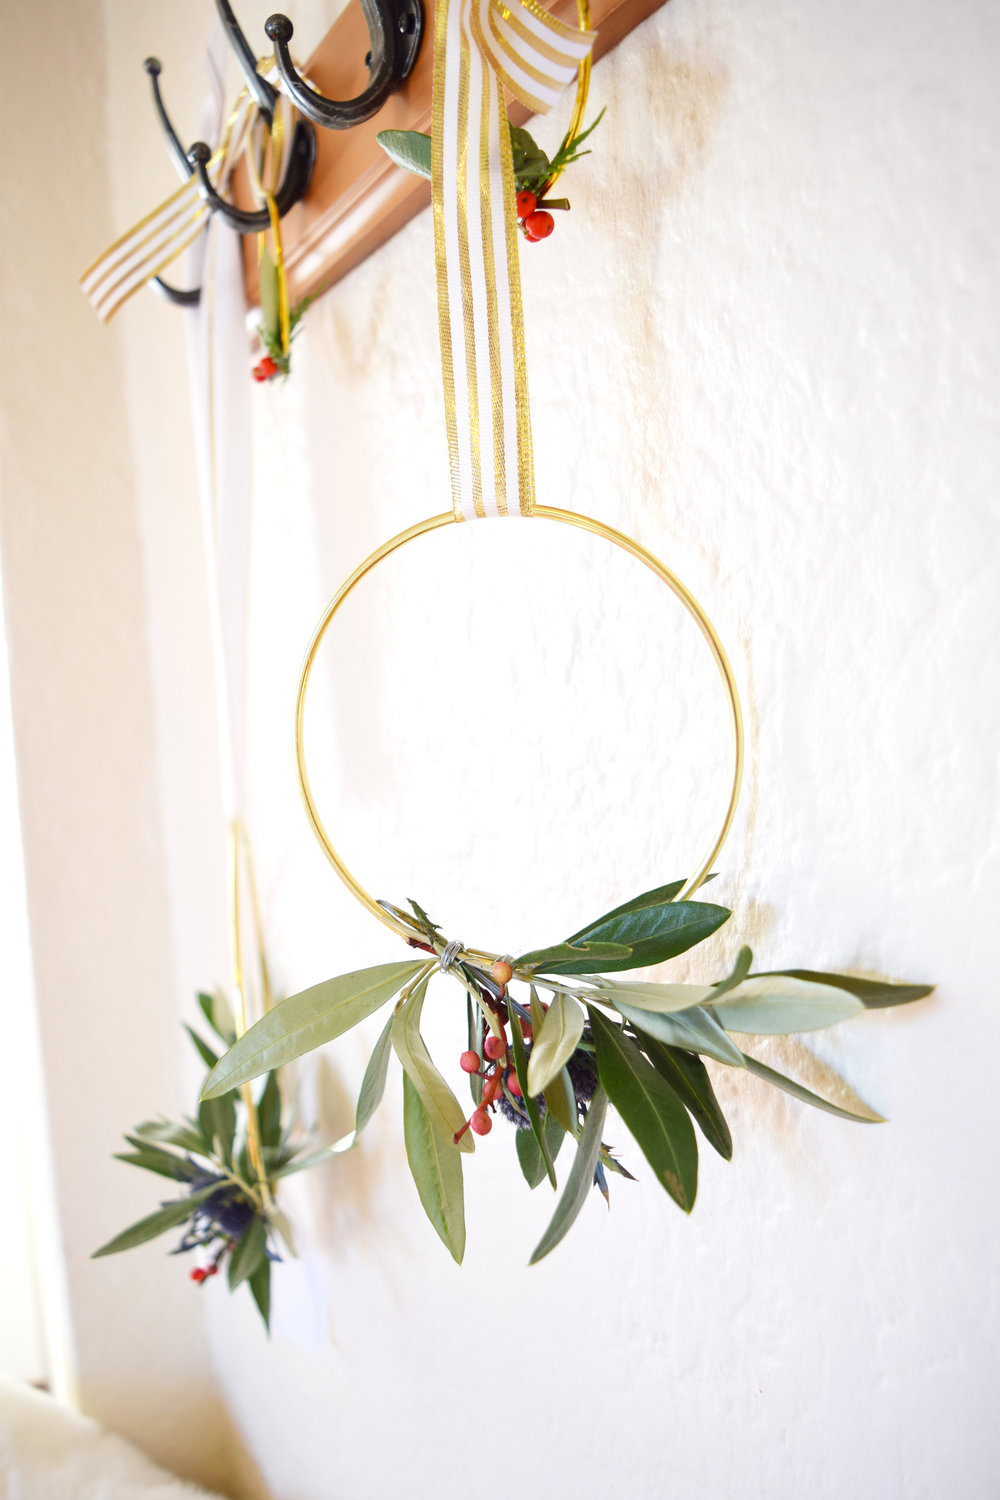 diy_holiday_wreath_5.jpg